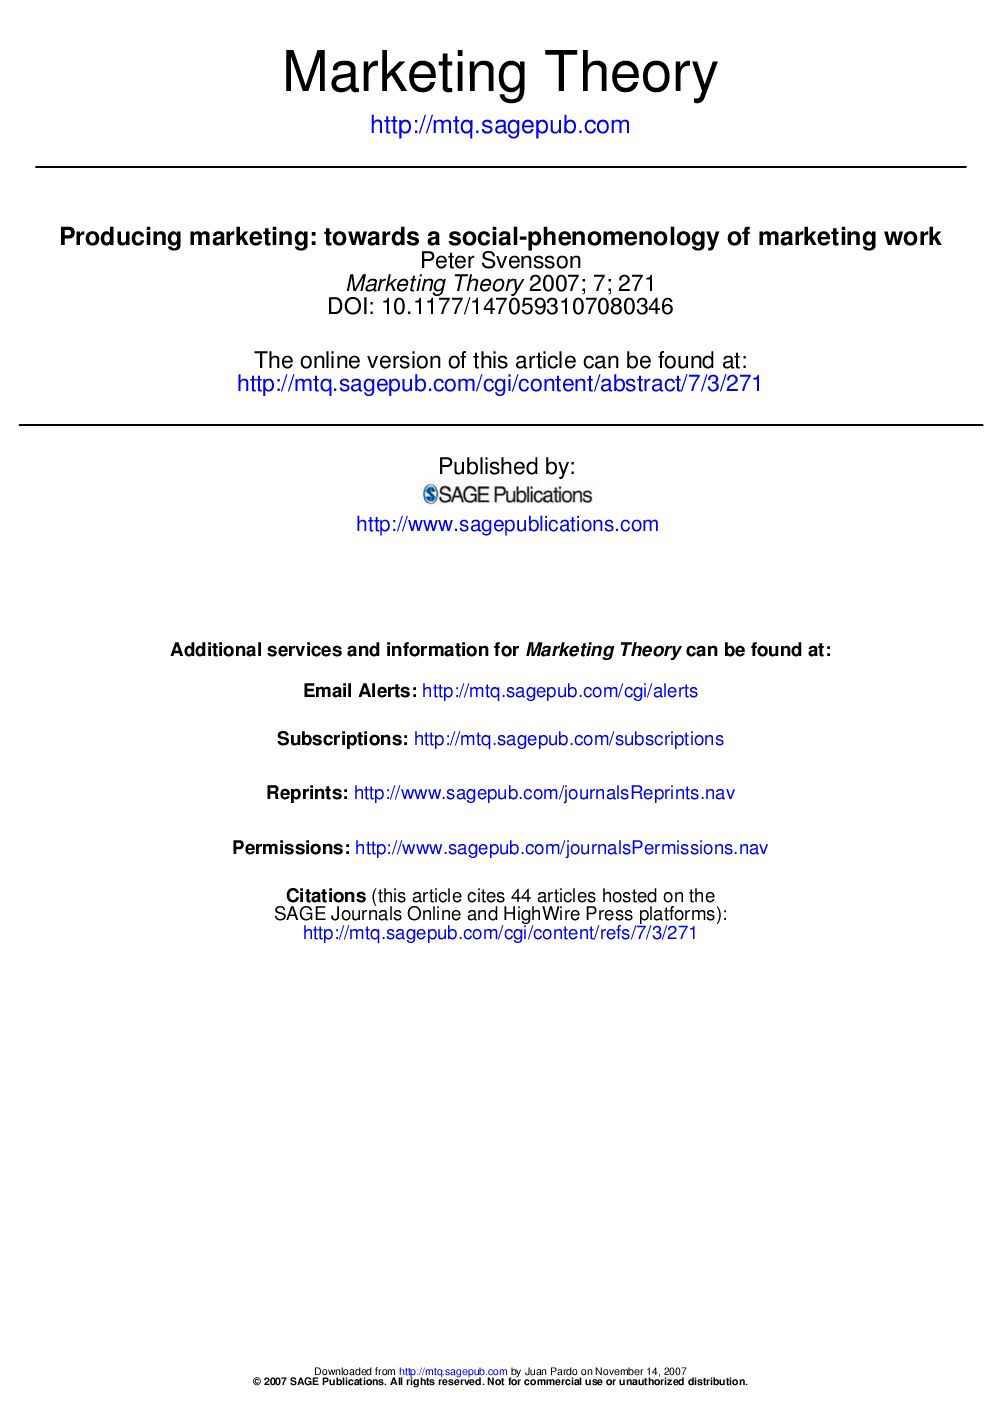 marketing theories profile for mkt 711 This course exposes students to various elements of the marketing mix  it  uncovers the application of basic marketing concepts and  a specific course  description will be published online in the course schedule for the semester the  course is offered  mkt711 marketing management for executives.